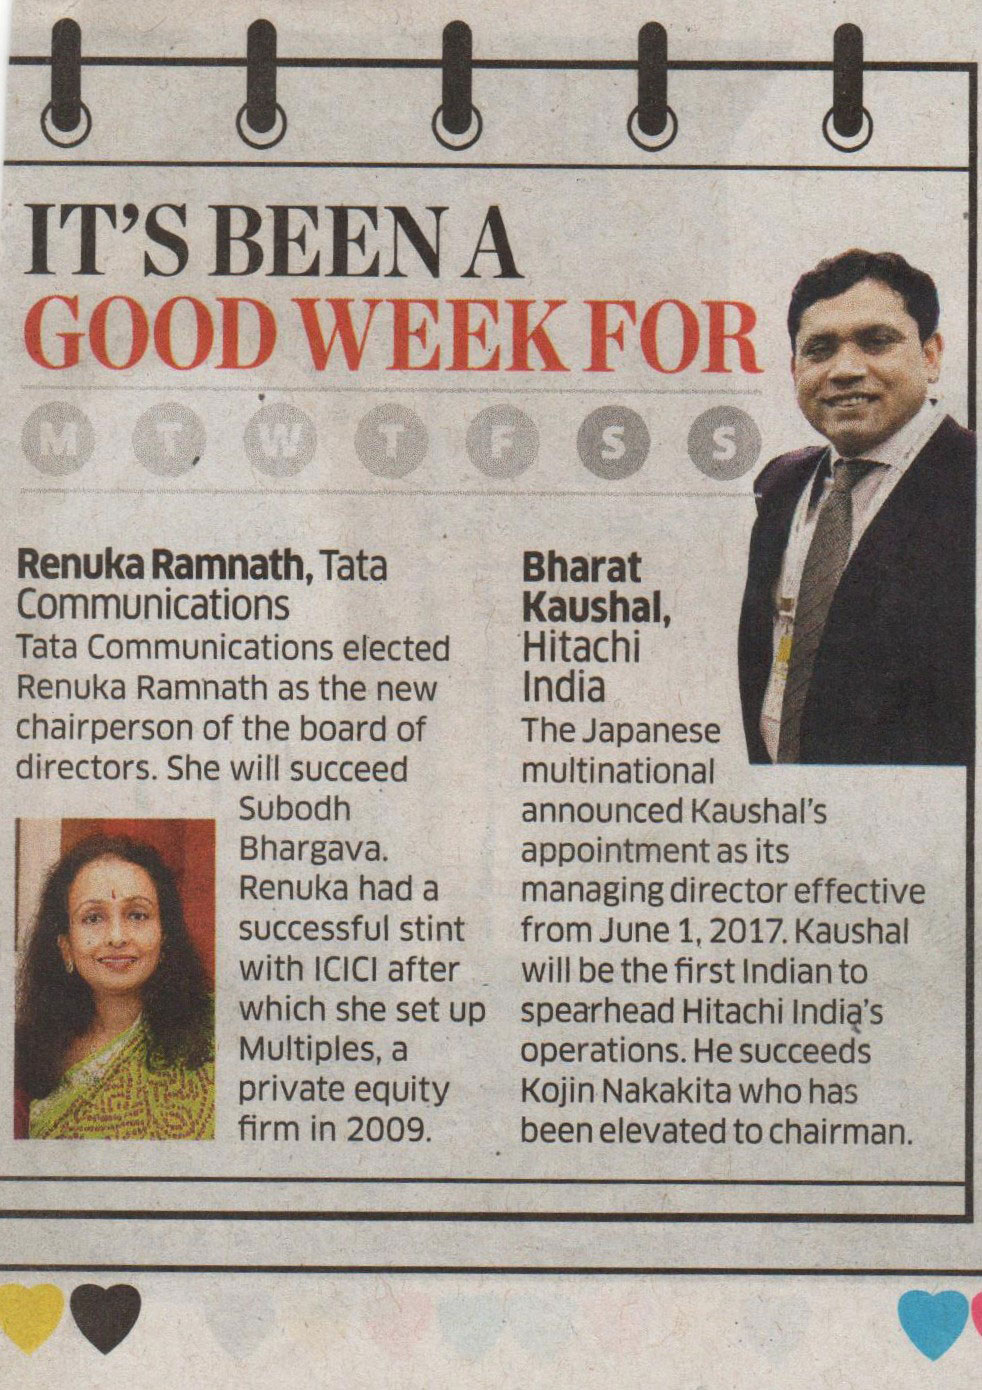 ET Panache covers the appointment of Hitachi India's new MD